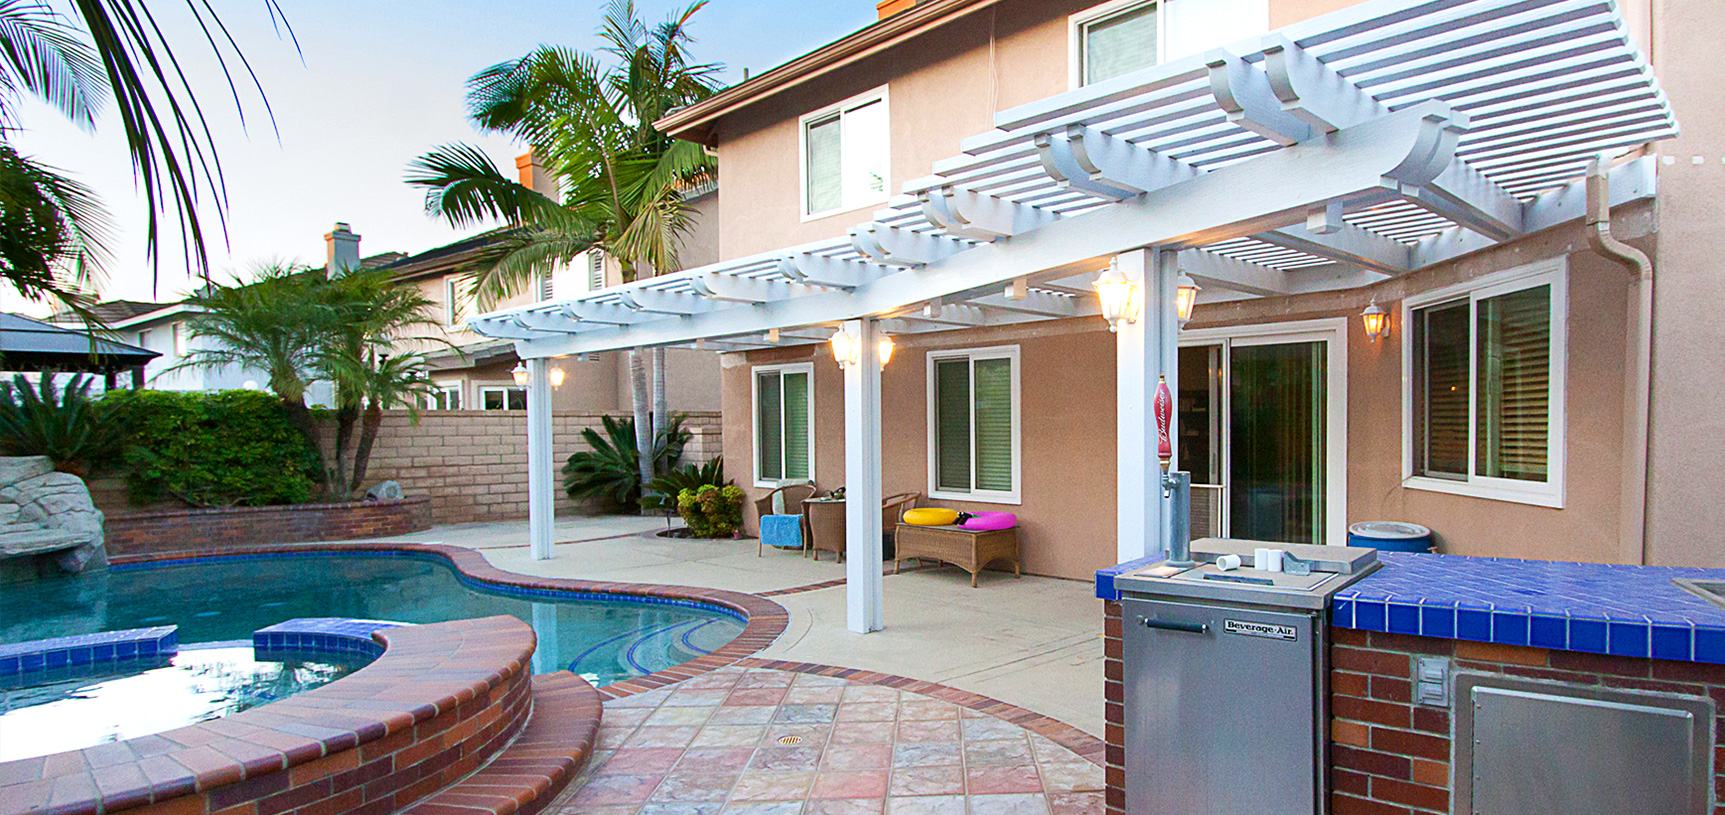 Elitewood Patio Cover in Orange County, California